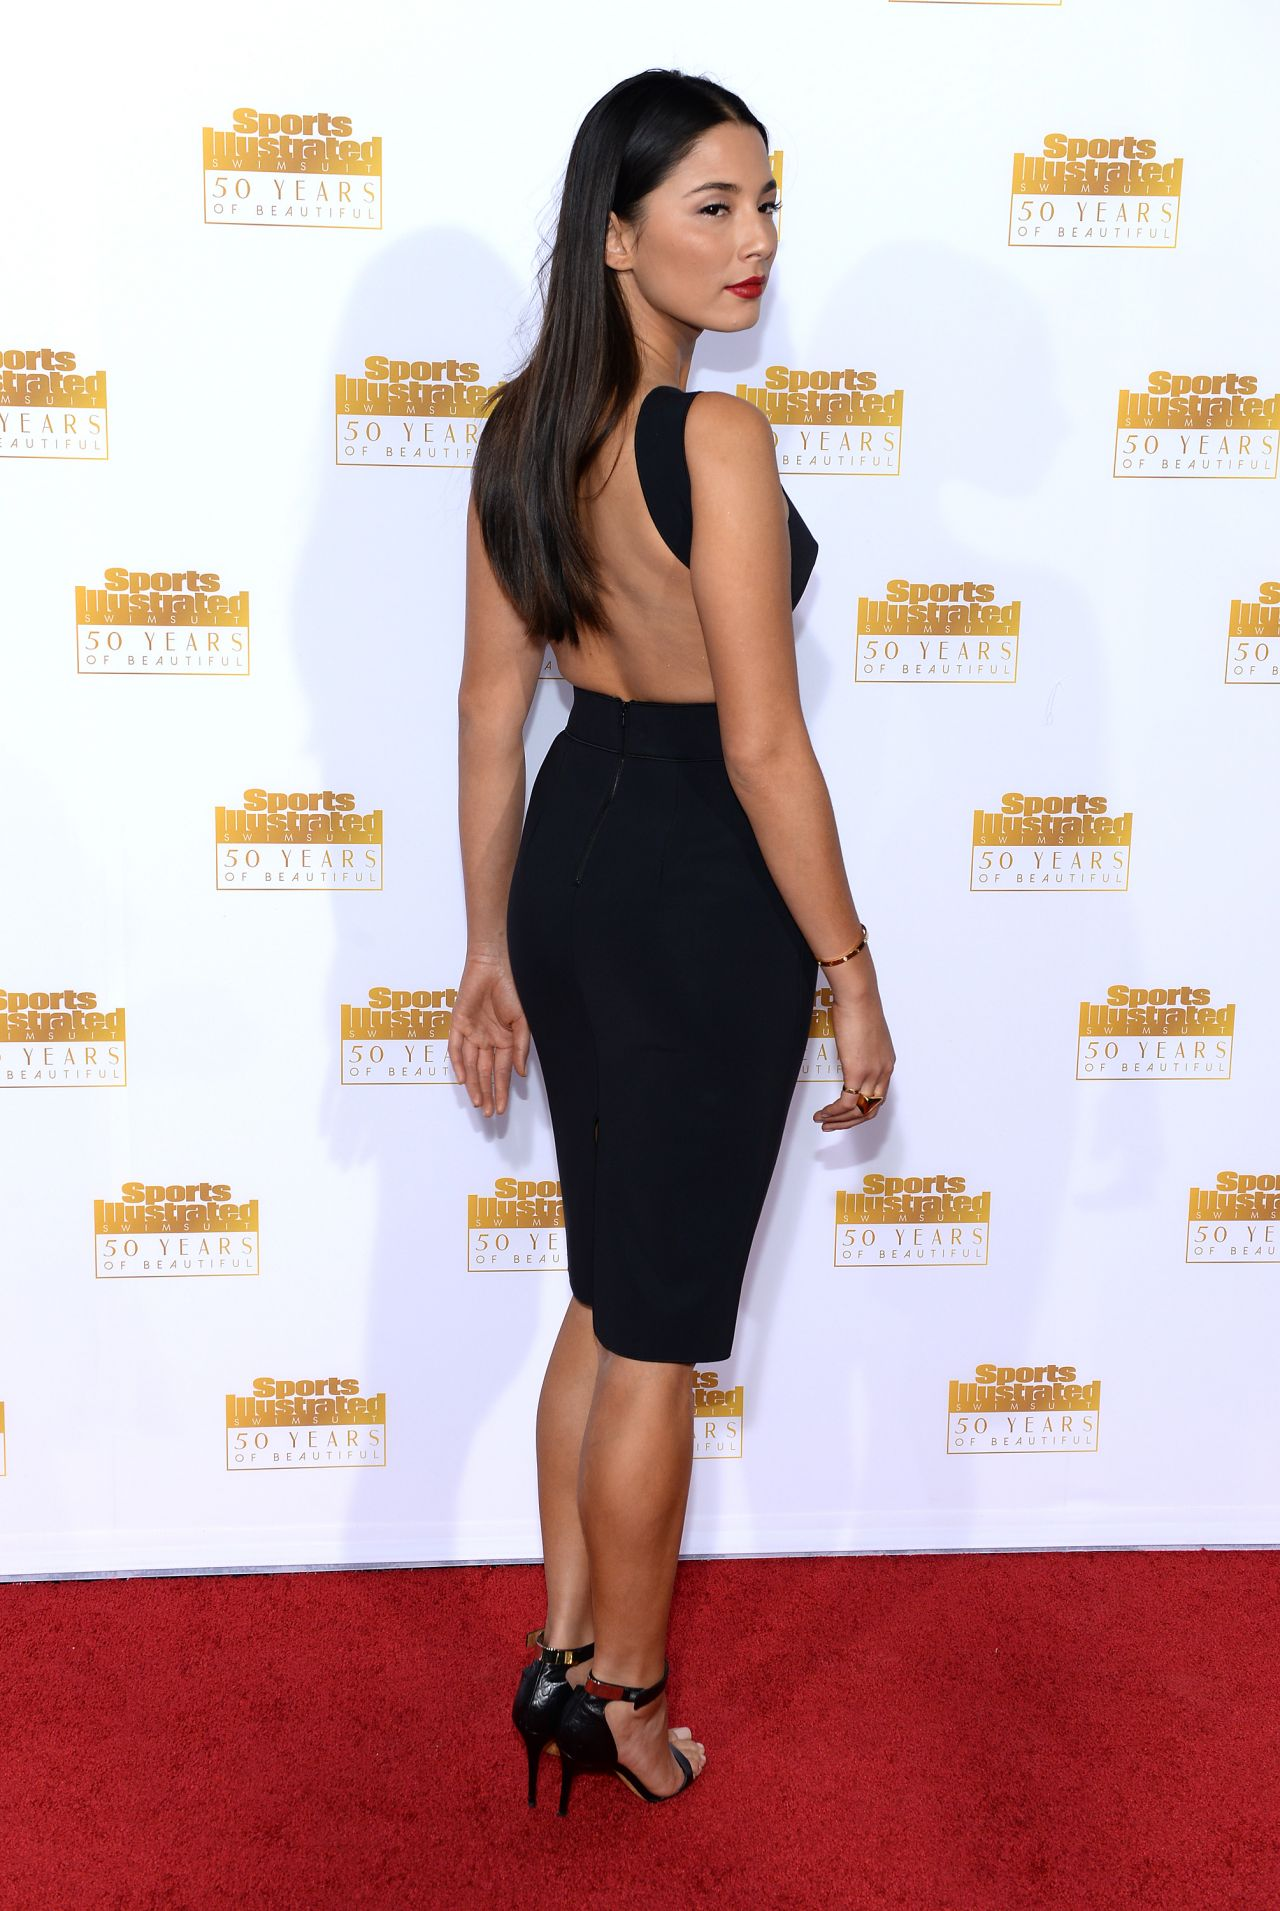 Jessica Gomes Red Carpet Photos - 50th Anniversary of the SI Swimsuit Issue in Hollywood, Jan. 2014